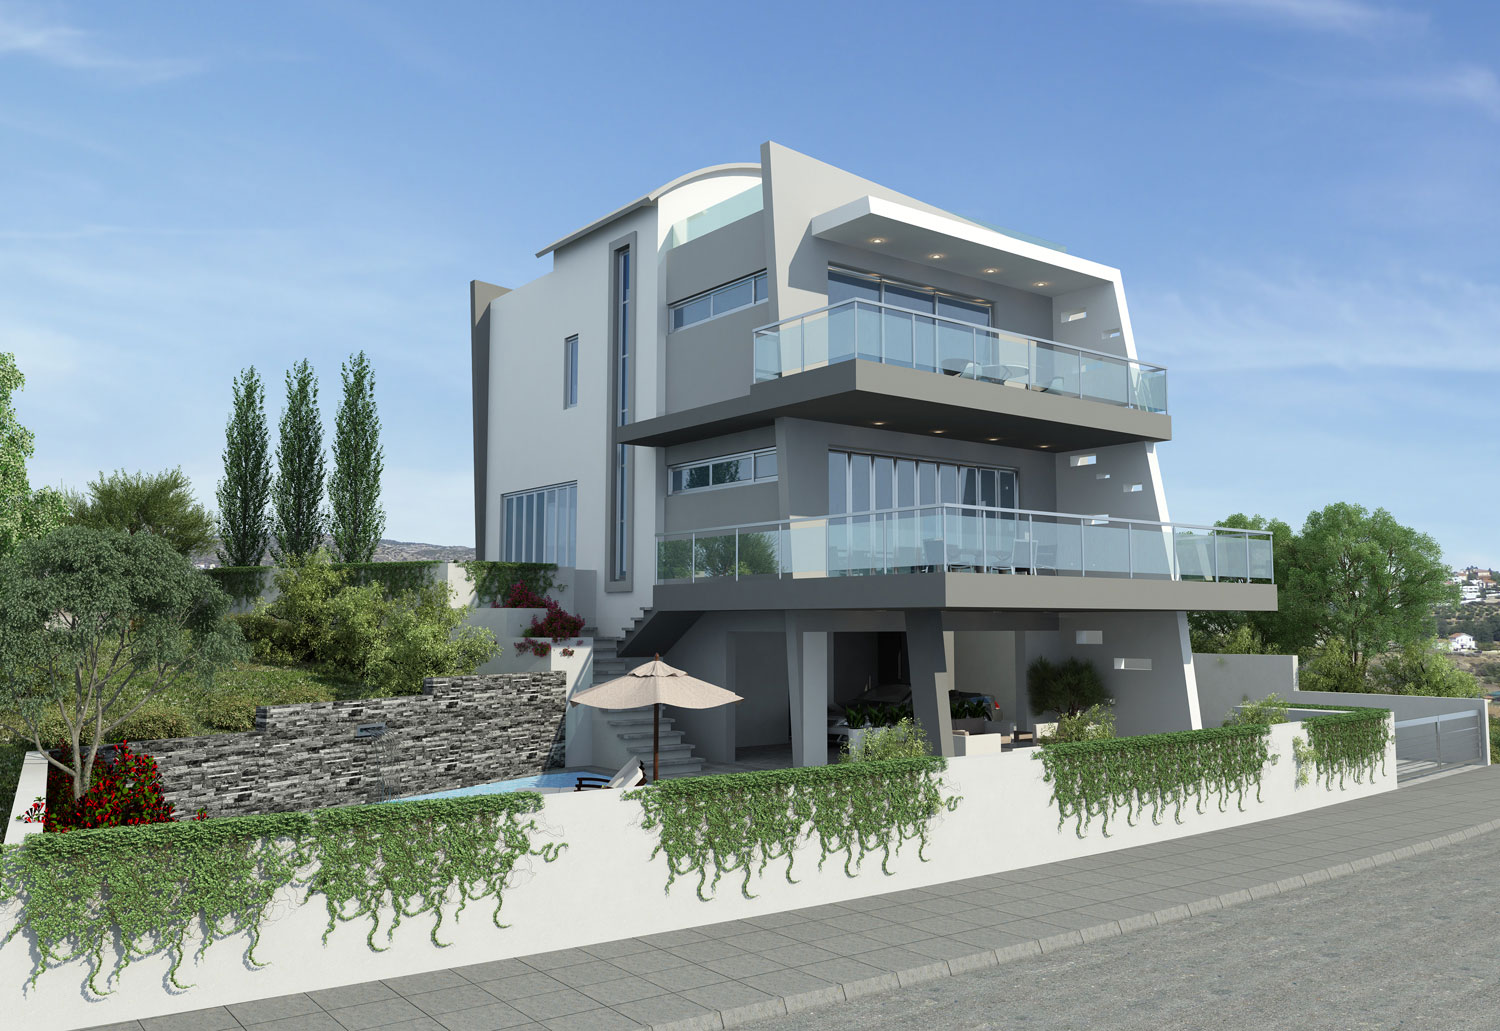 New home designs latest for Modern house front view design